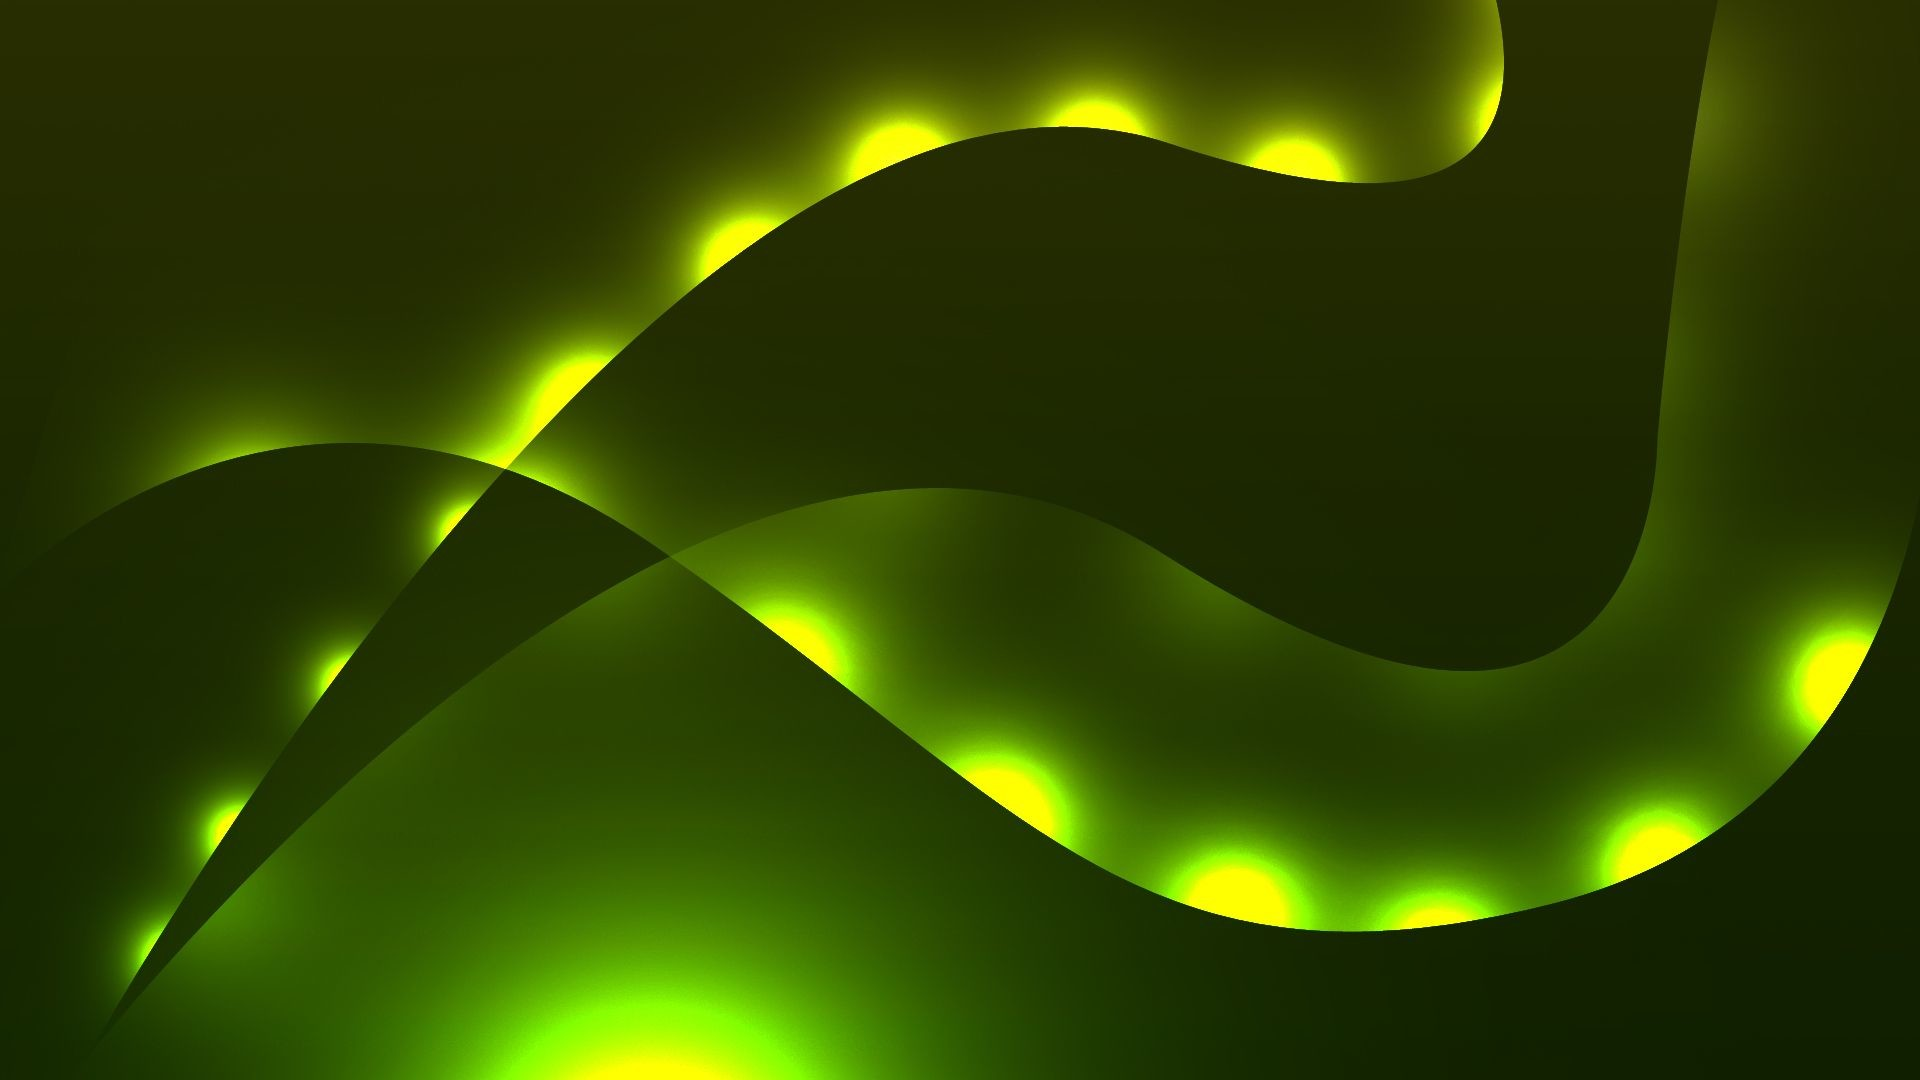 Res: 1920x1080, Hd Wallpaper Abstract Green Widescreen 2 HD Wallpapers